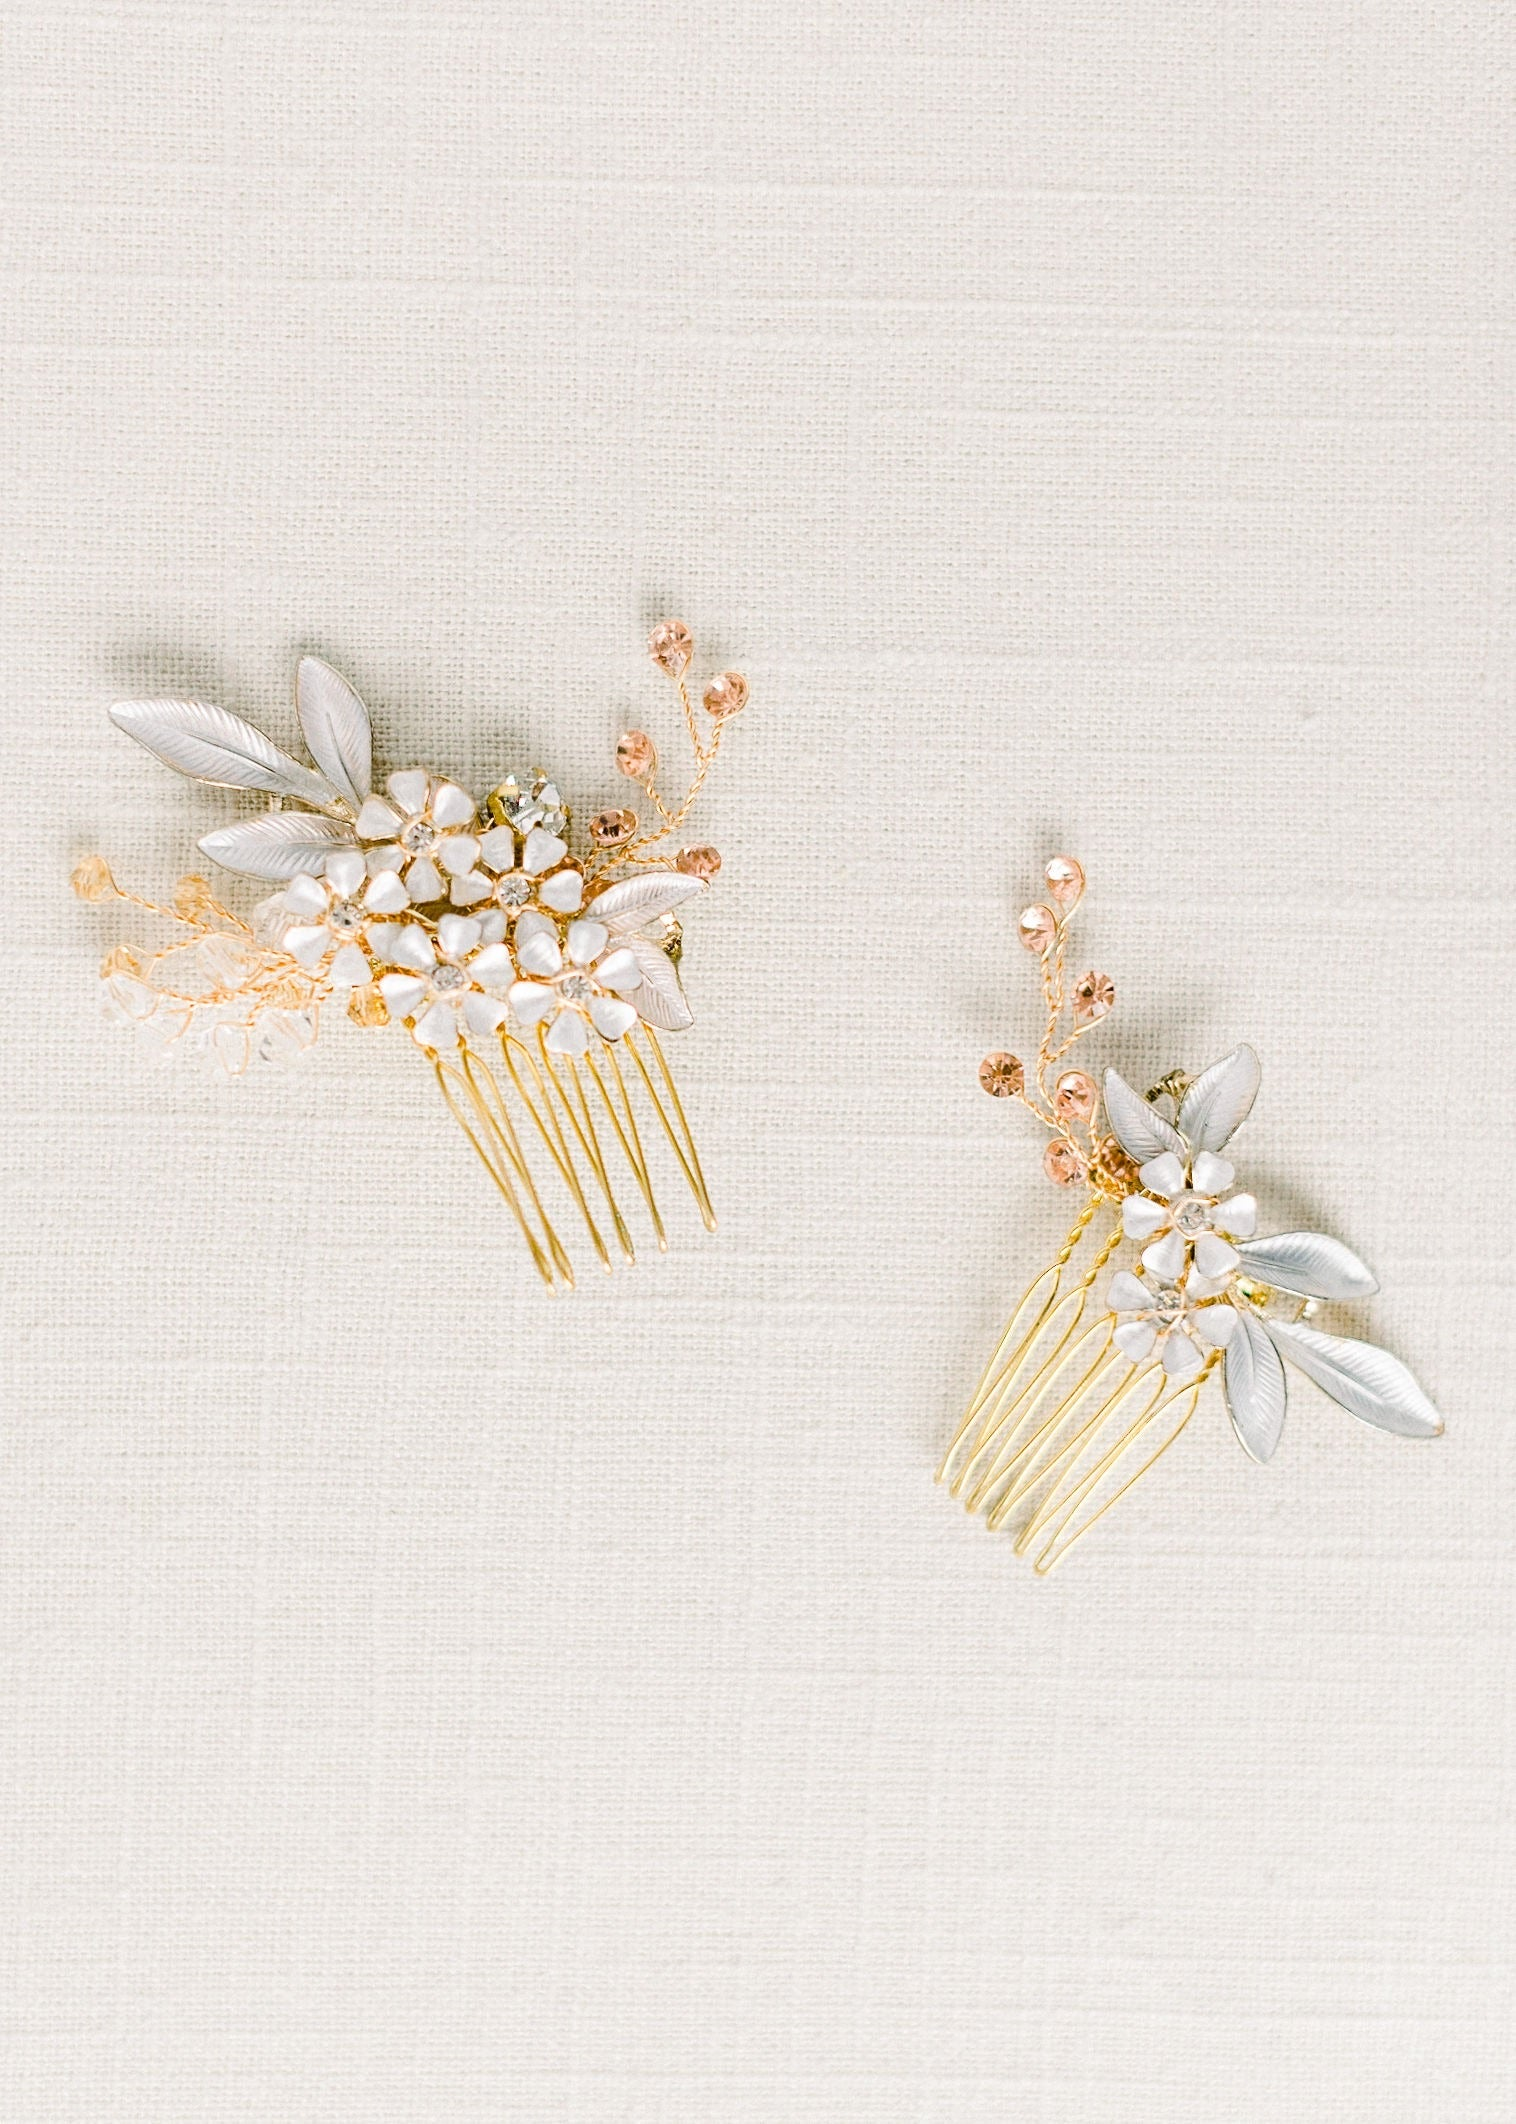 Flower rhinestone hair comb set - Style 4007 - Ready to ship - Tessa Kim